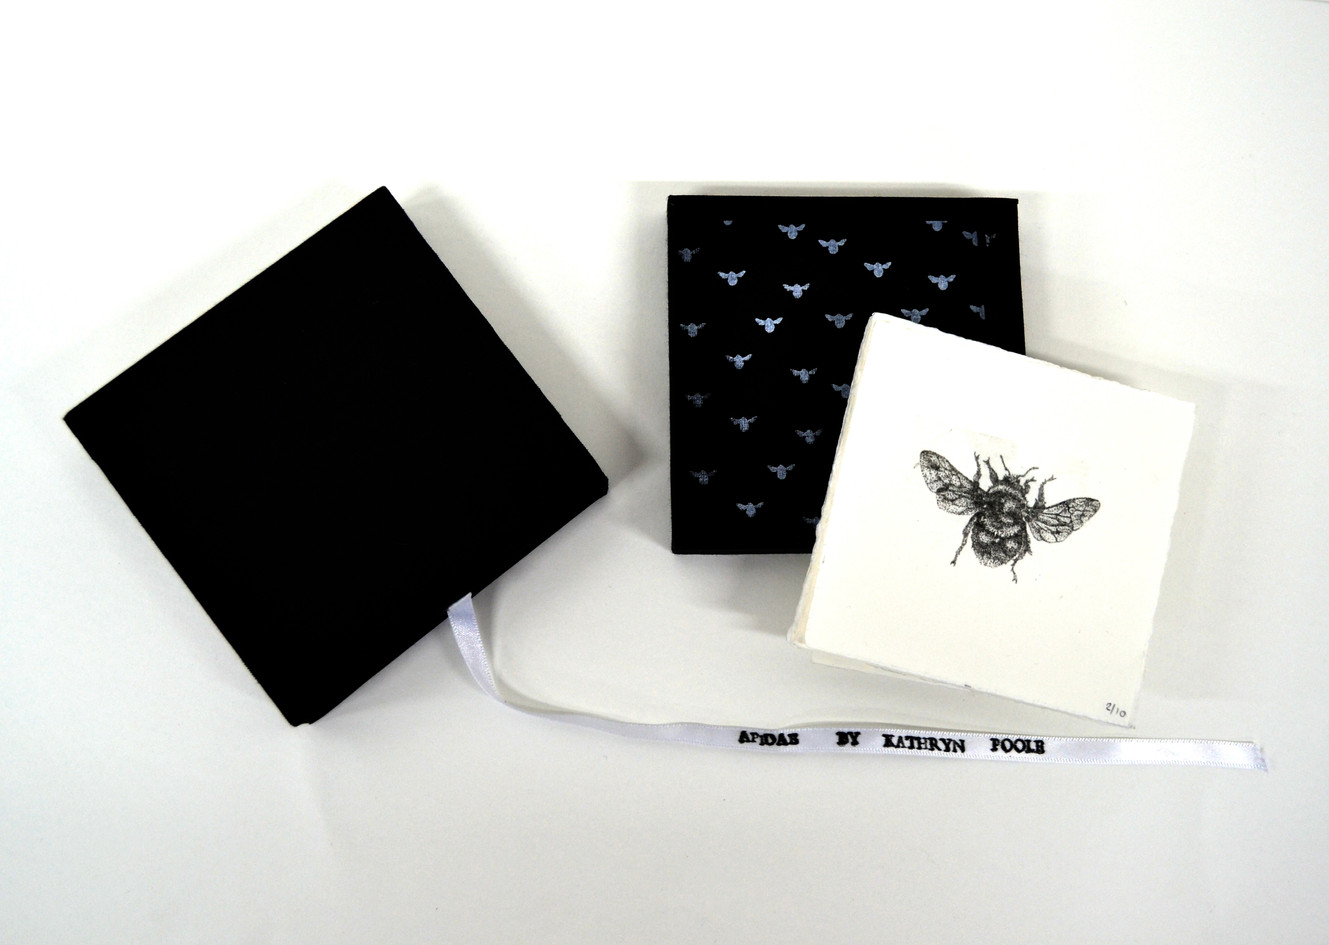 Apidae box, photolithograph prints in a handmade box, edition of 10, 2013